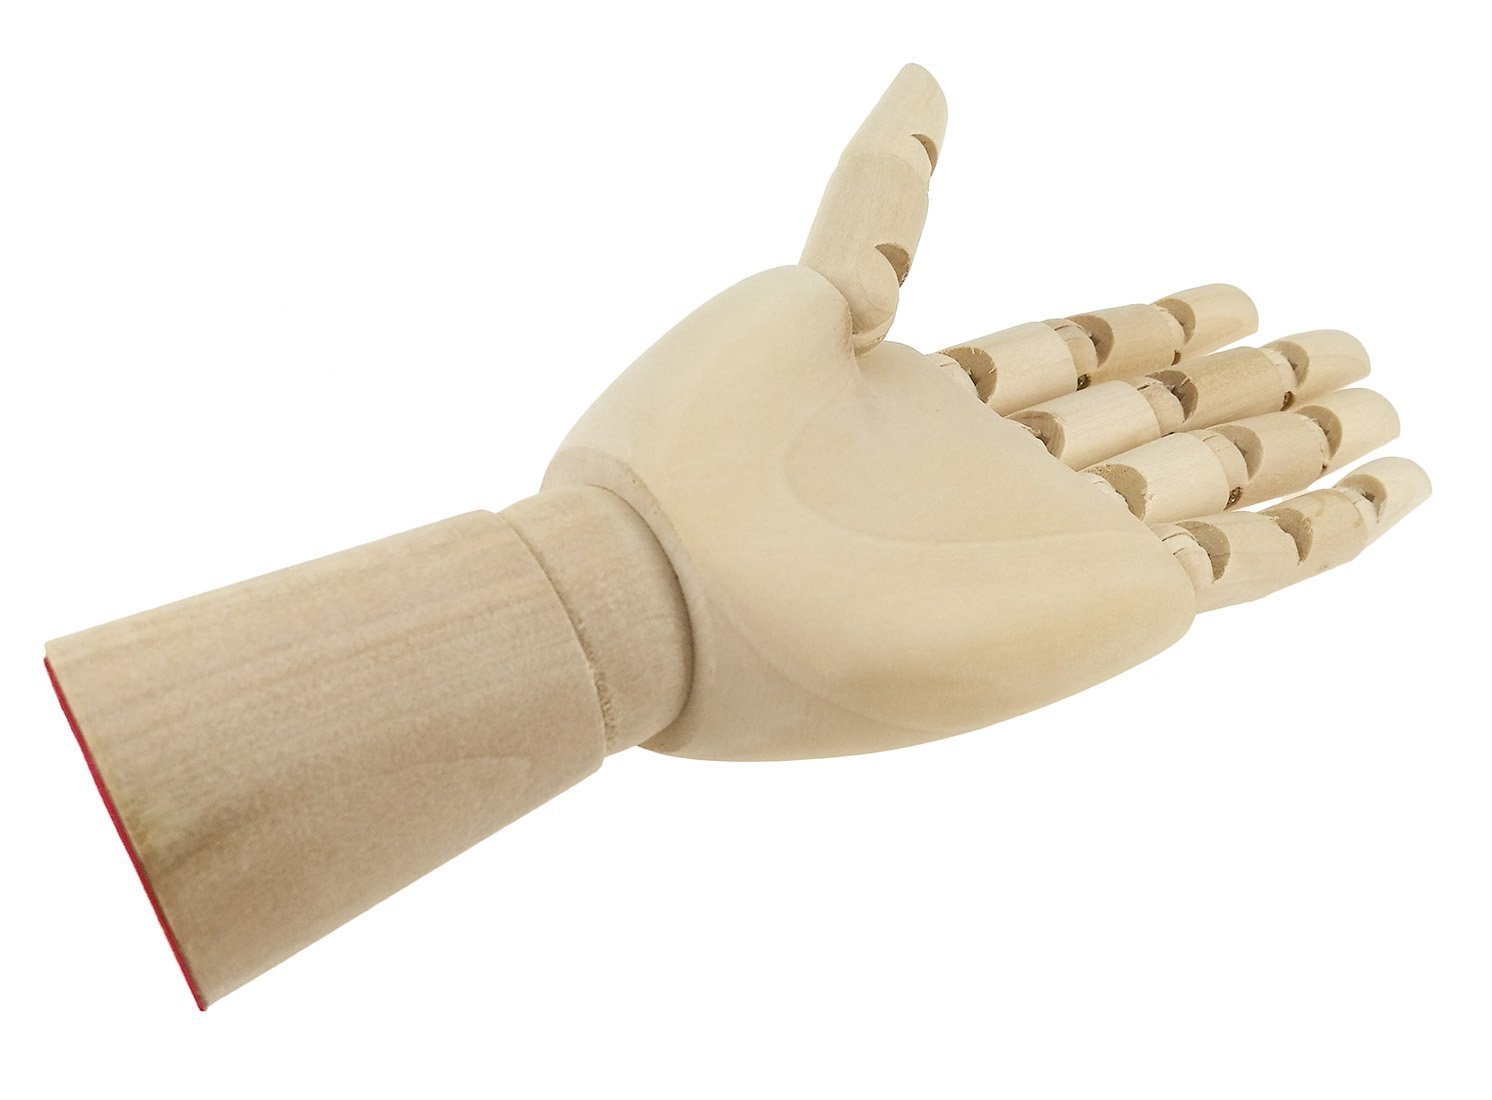 7 Inches-Right Hand Wooden Pine Movable Hand Joint Model For Art Mannequin Sketch Reference Home Decor